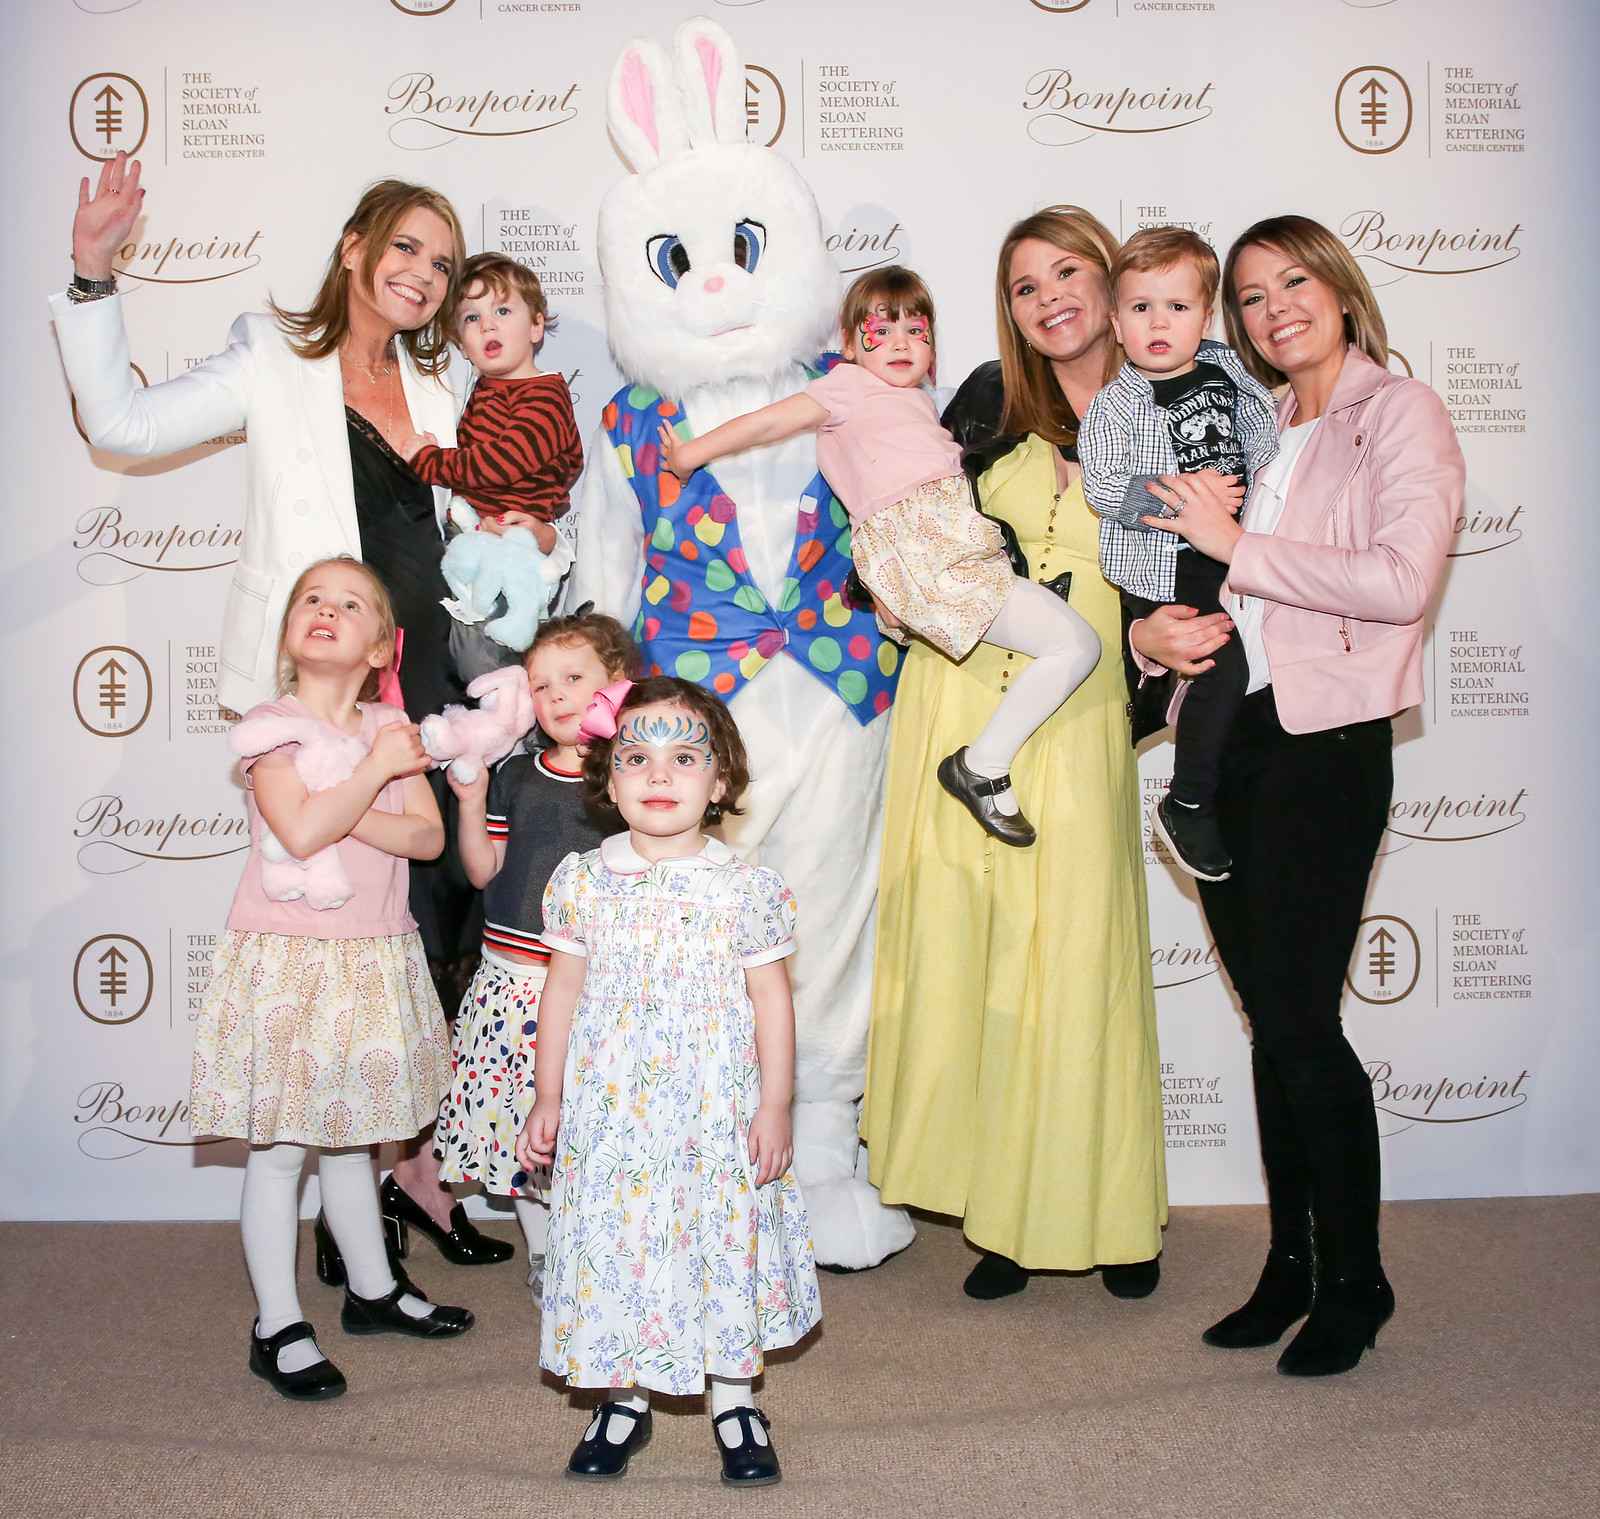 The Society of Memorial Sloan Kettering: Annual Bunny Hop